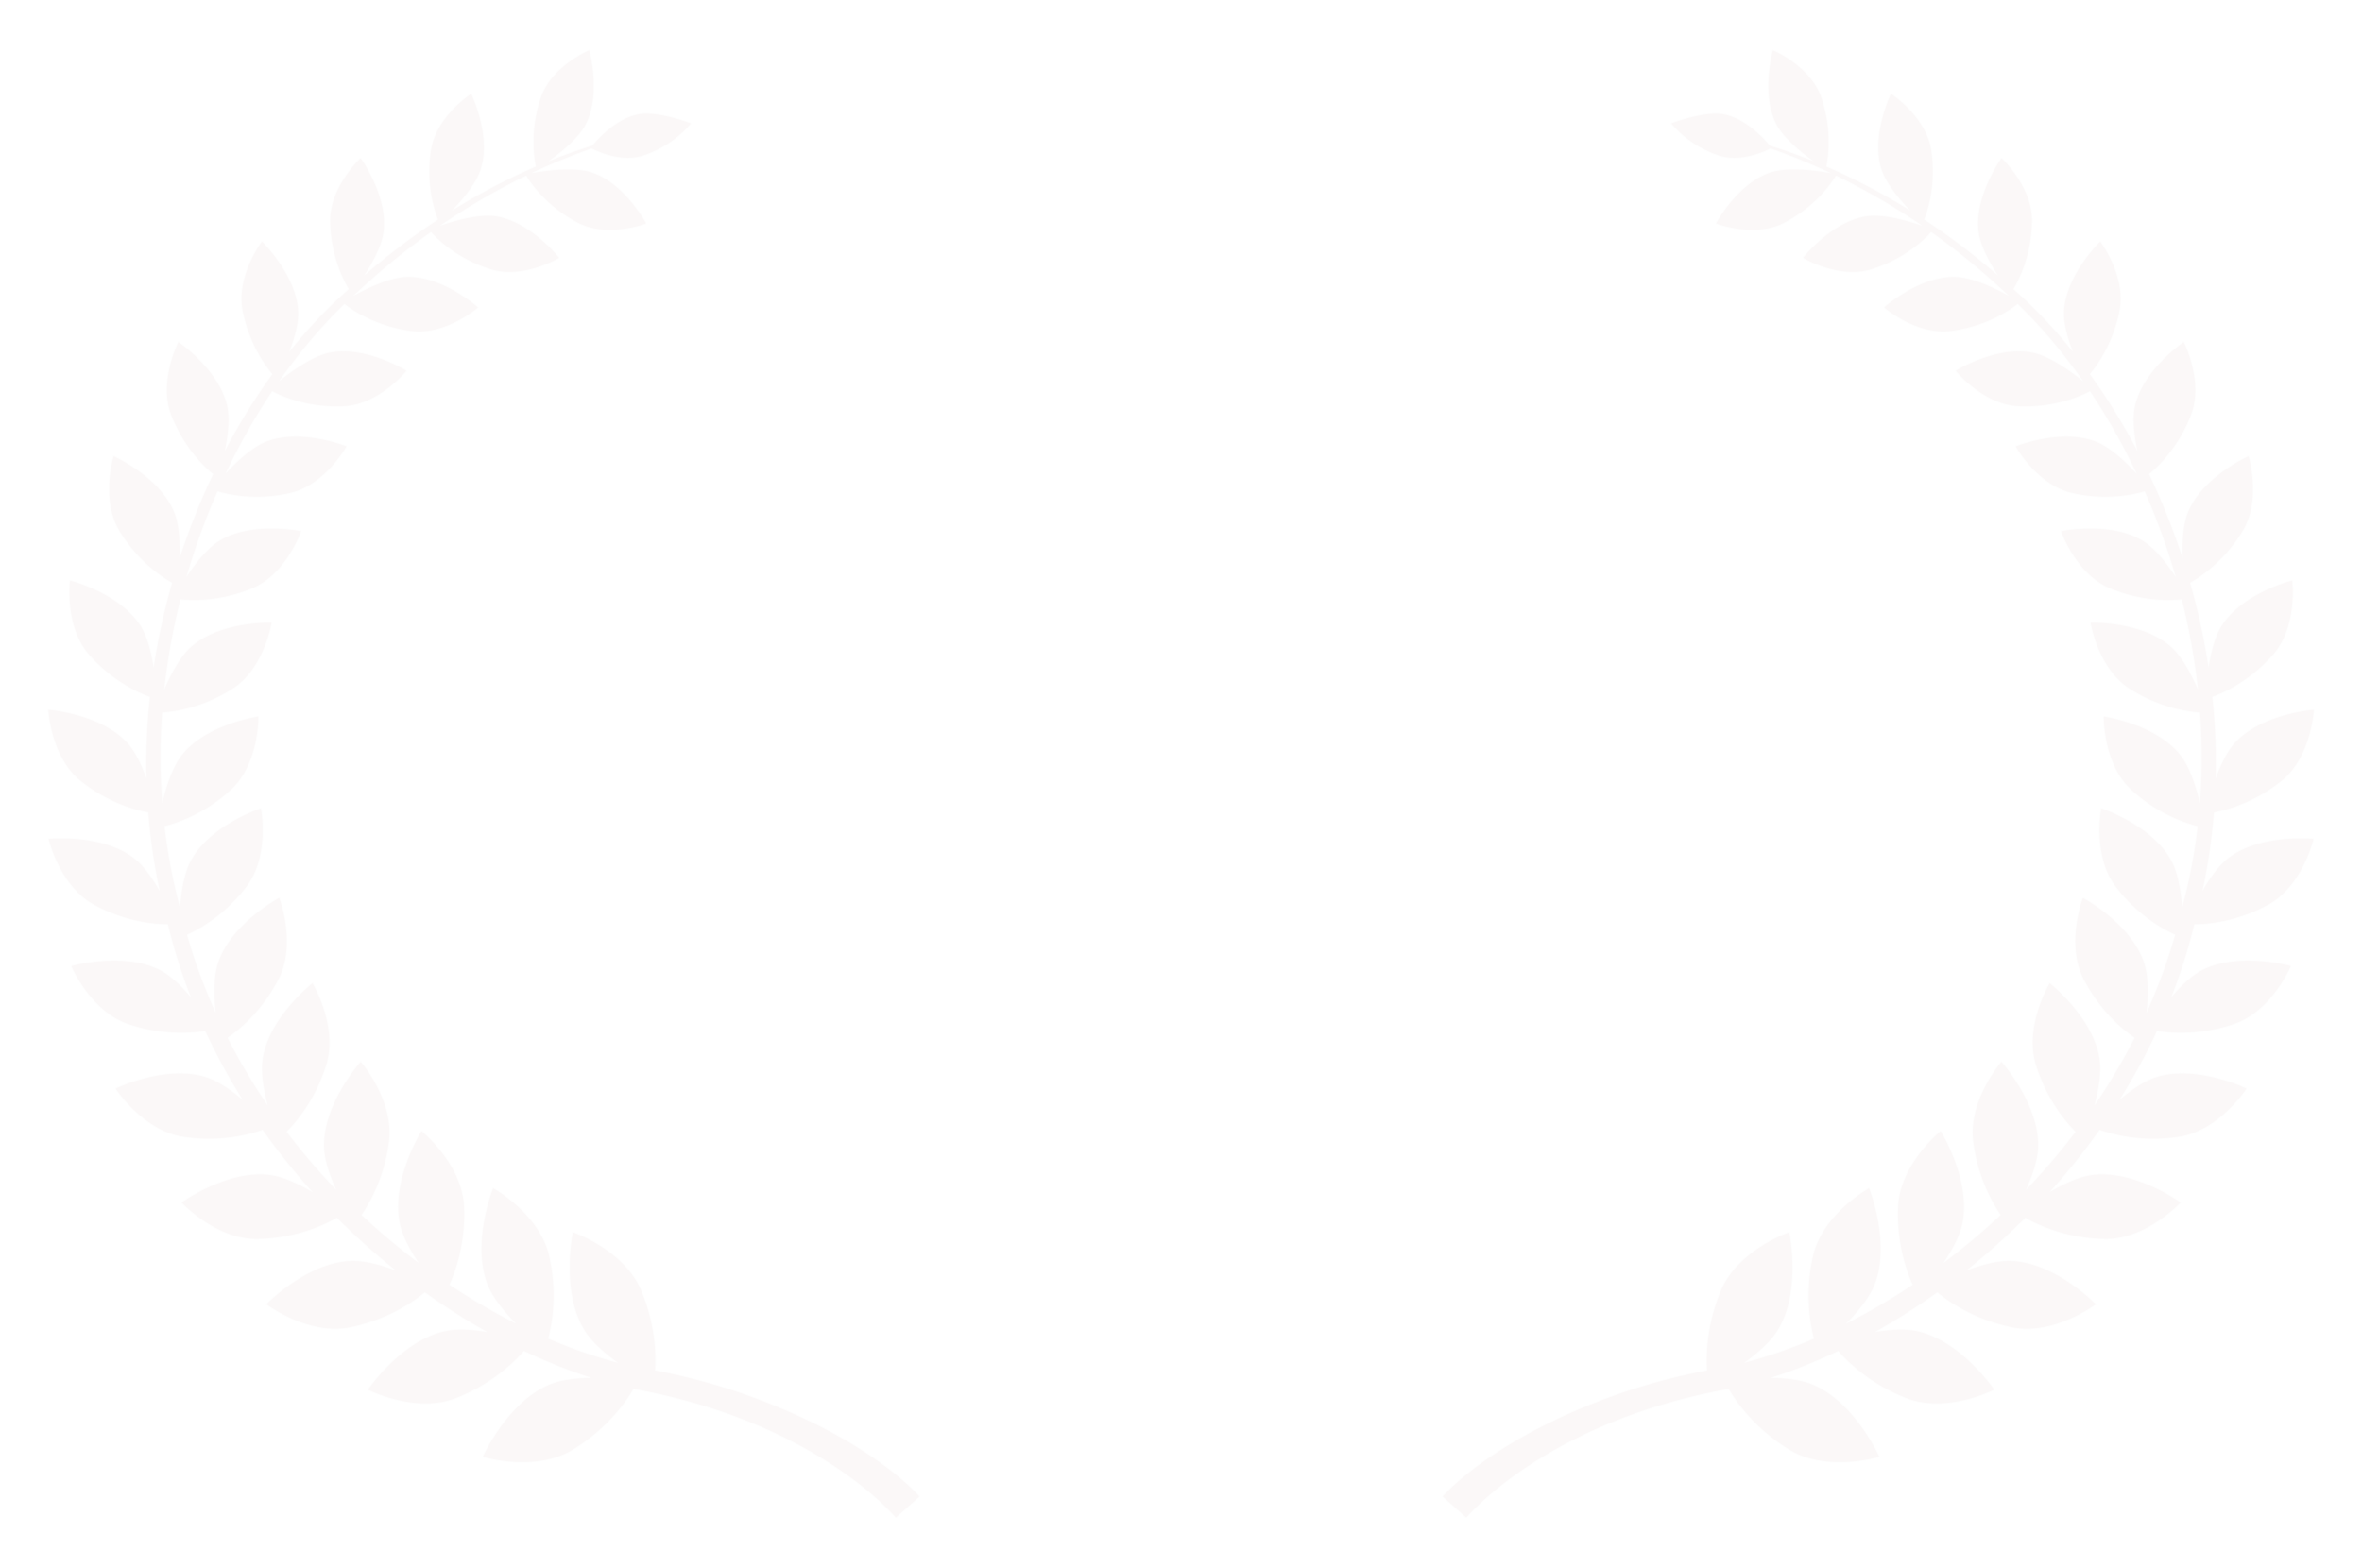 World Premiere - Phoenix, AZApril 4-14. WINNER: Best Short Documentary. Attended by Michael Bruce, Alice Cooper, Dennis Dunaway, Neal Smith, Steven Gaddis, Chris Penn and countless friends and family of the band.